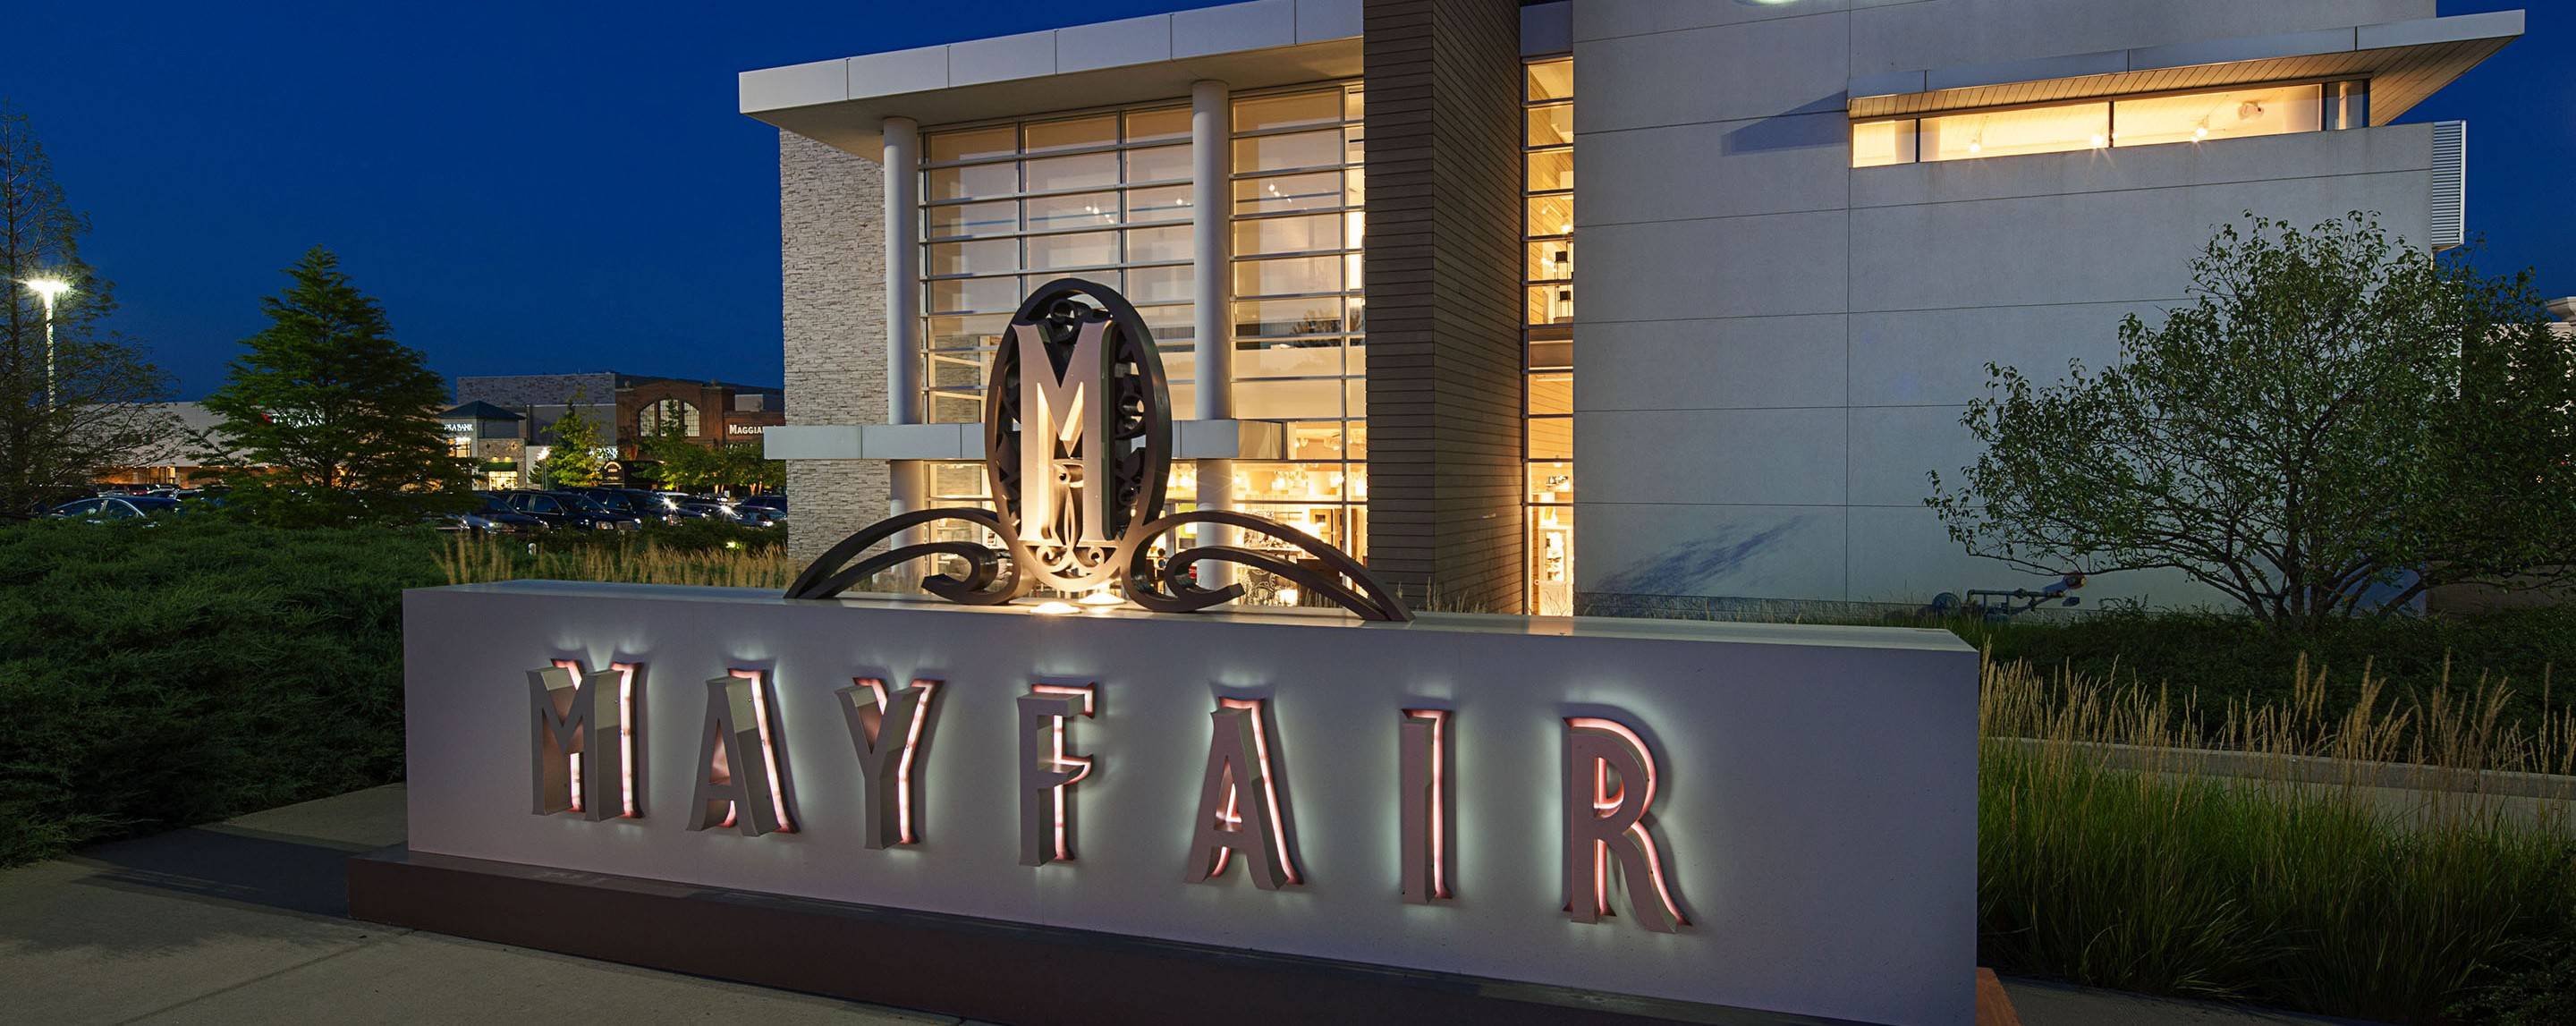 At night, the Mayfair property sign is lit up in the entrance of the property surrounded by greenery.